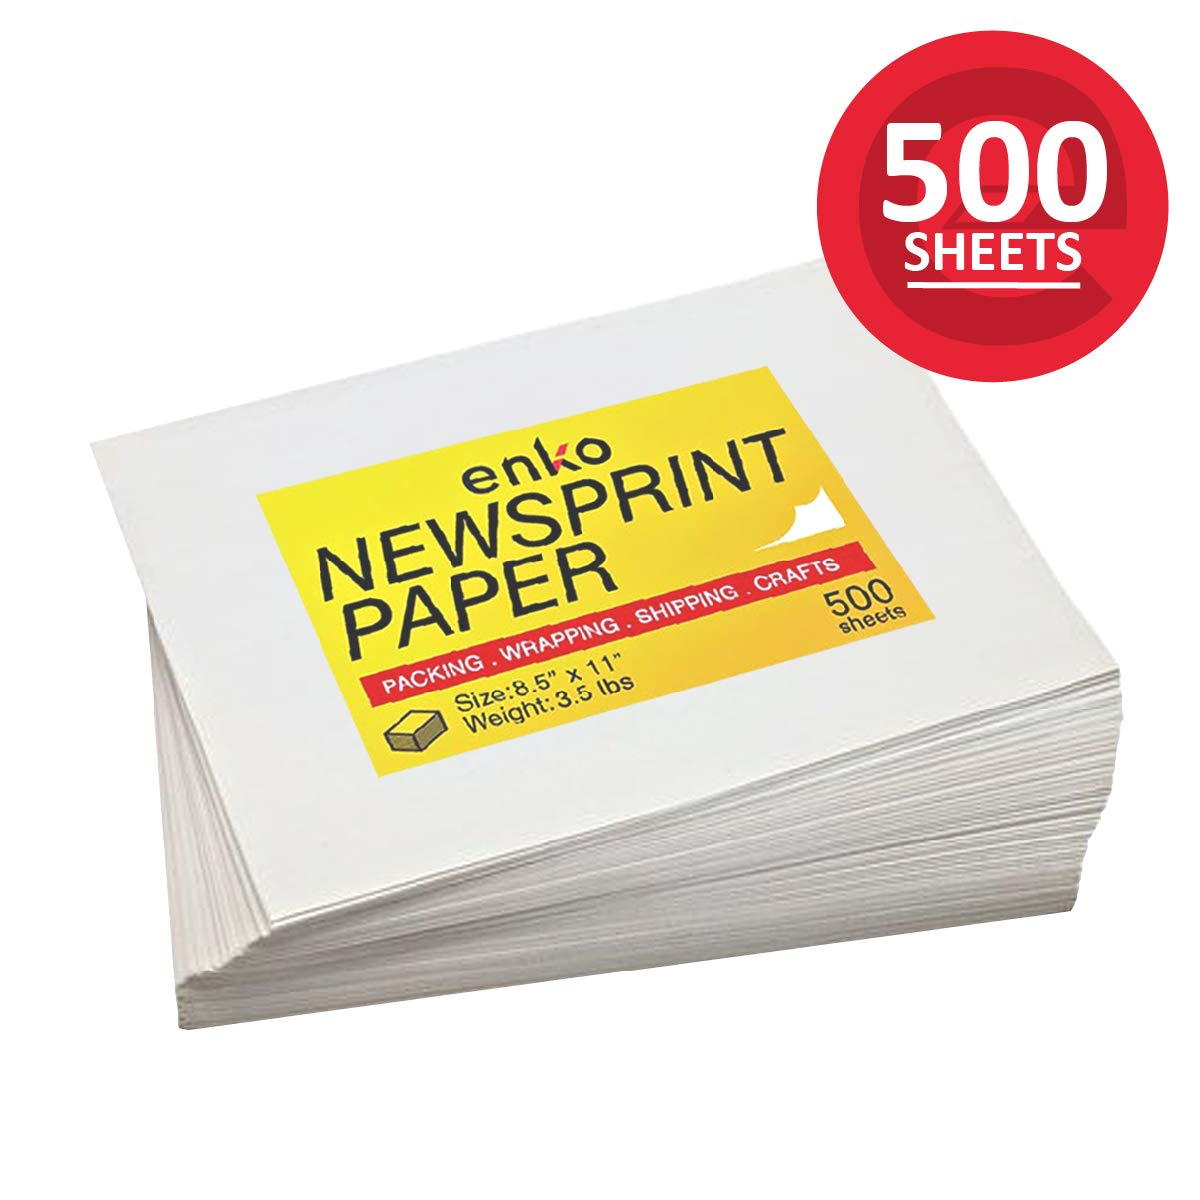 enKo - Newsprint Drawing/Sketch/Packing/Moving Paper Sheets (500 Sheets, 8.5 x 11 Inch)